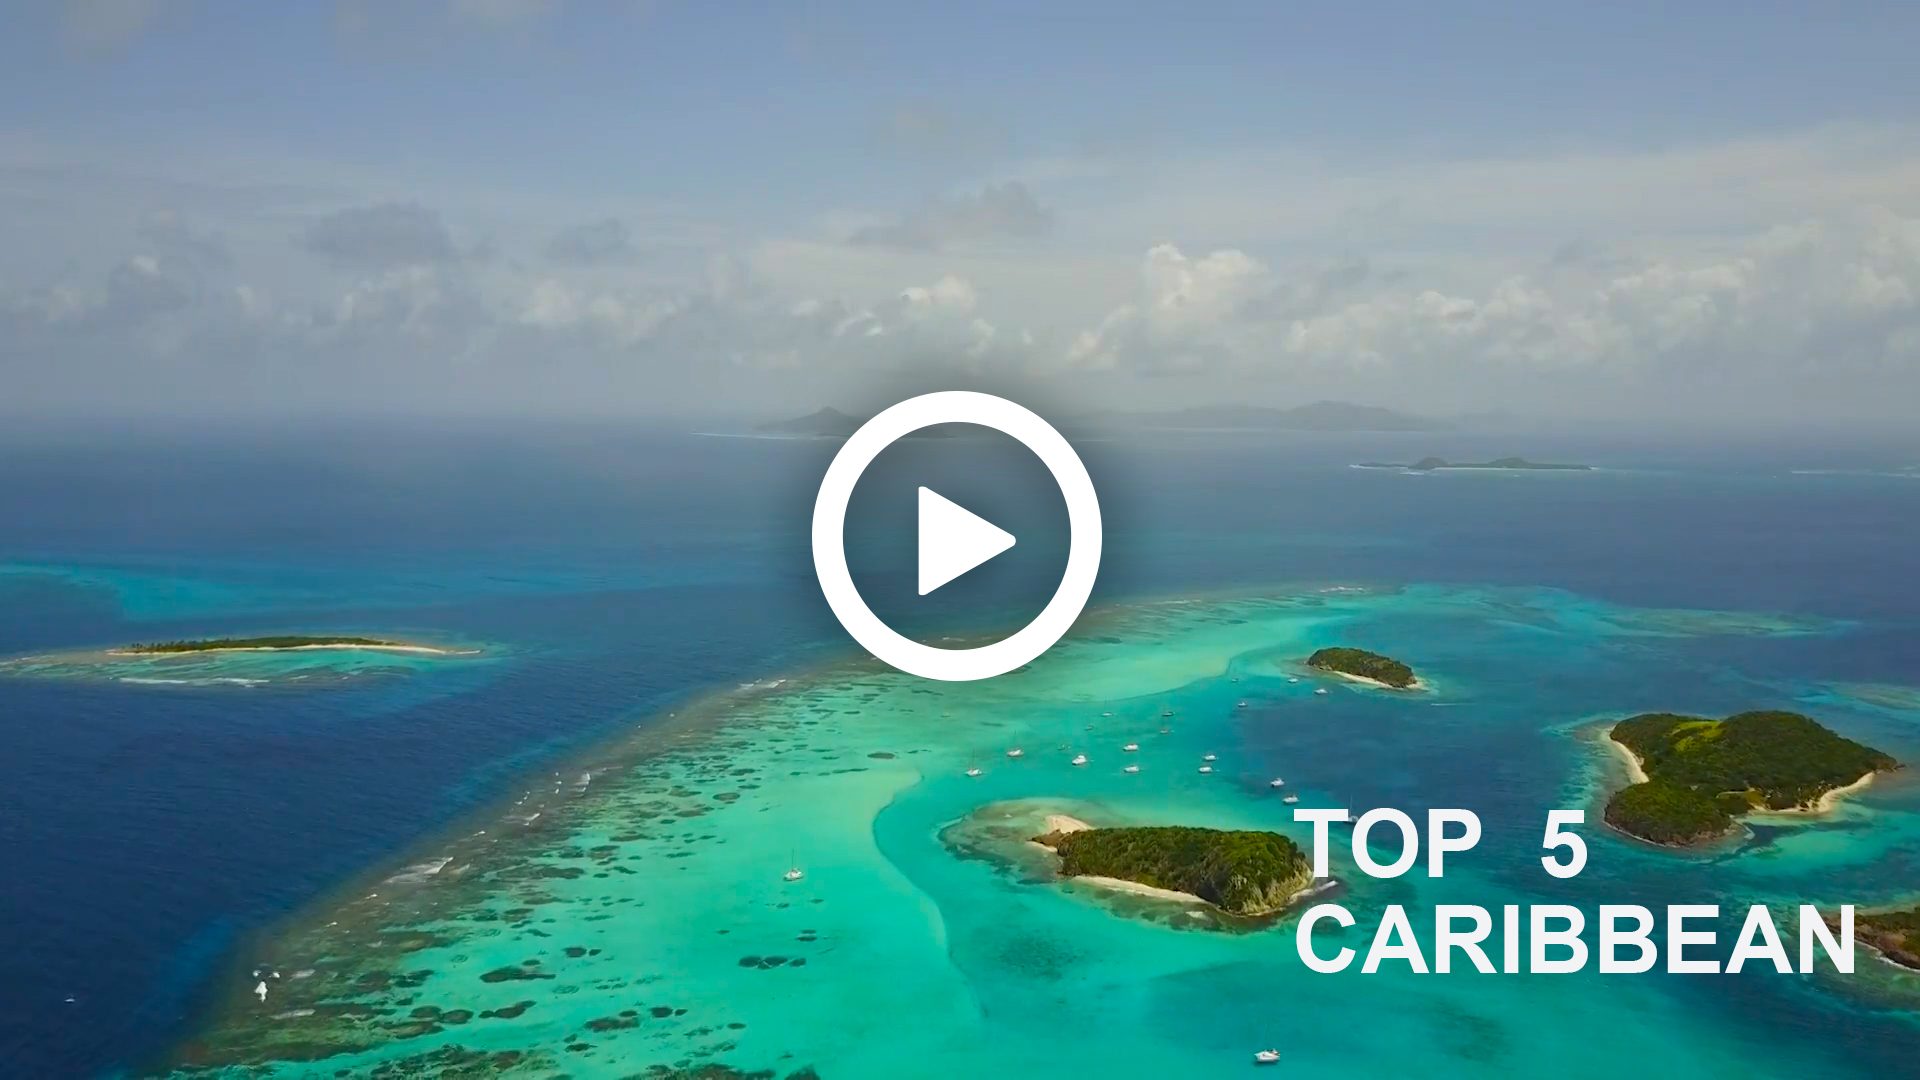 Sailing video to sale - Caribbean